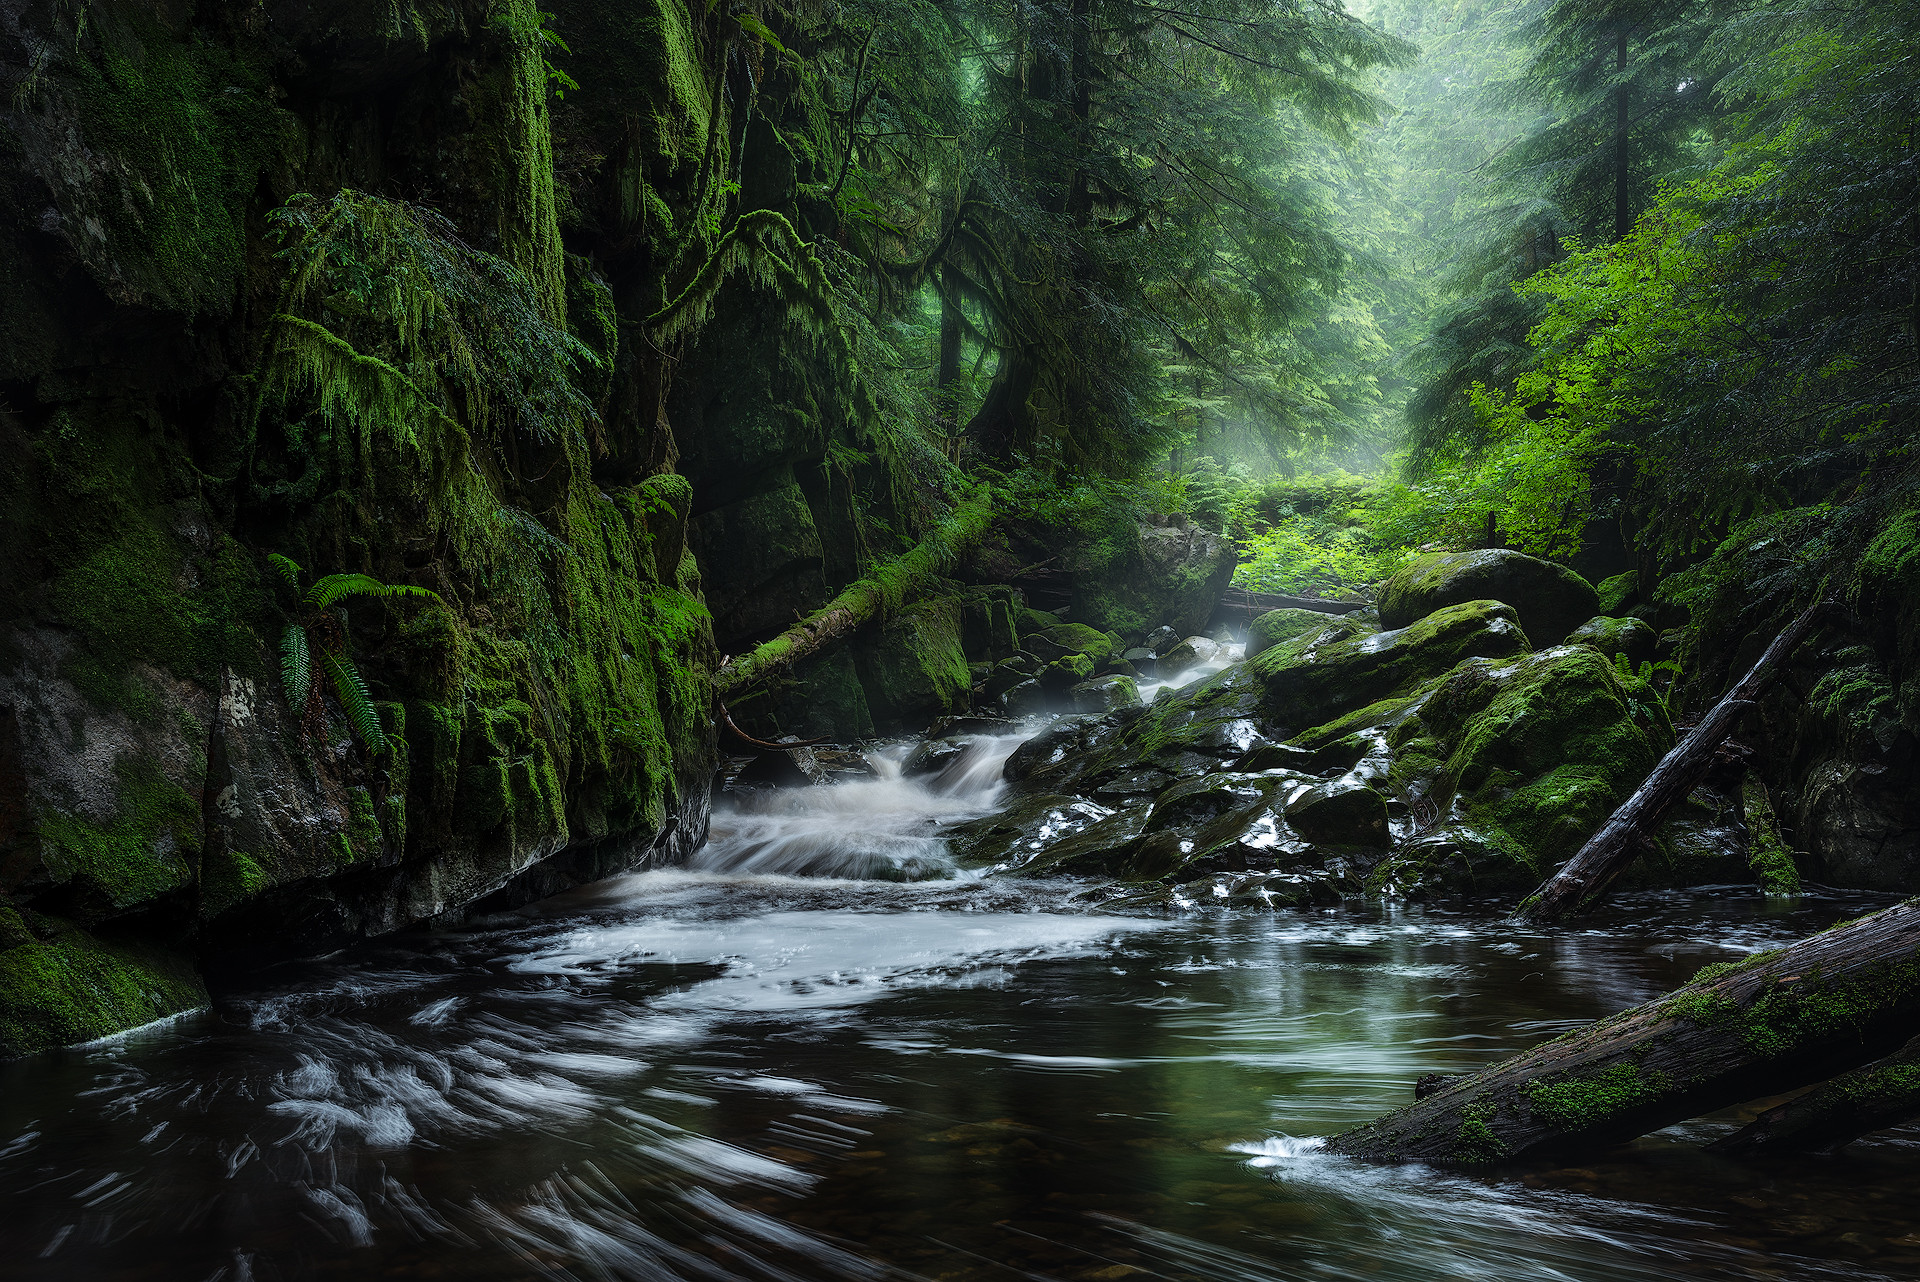 Forest Photography - Day Workshop